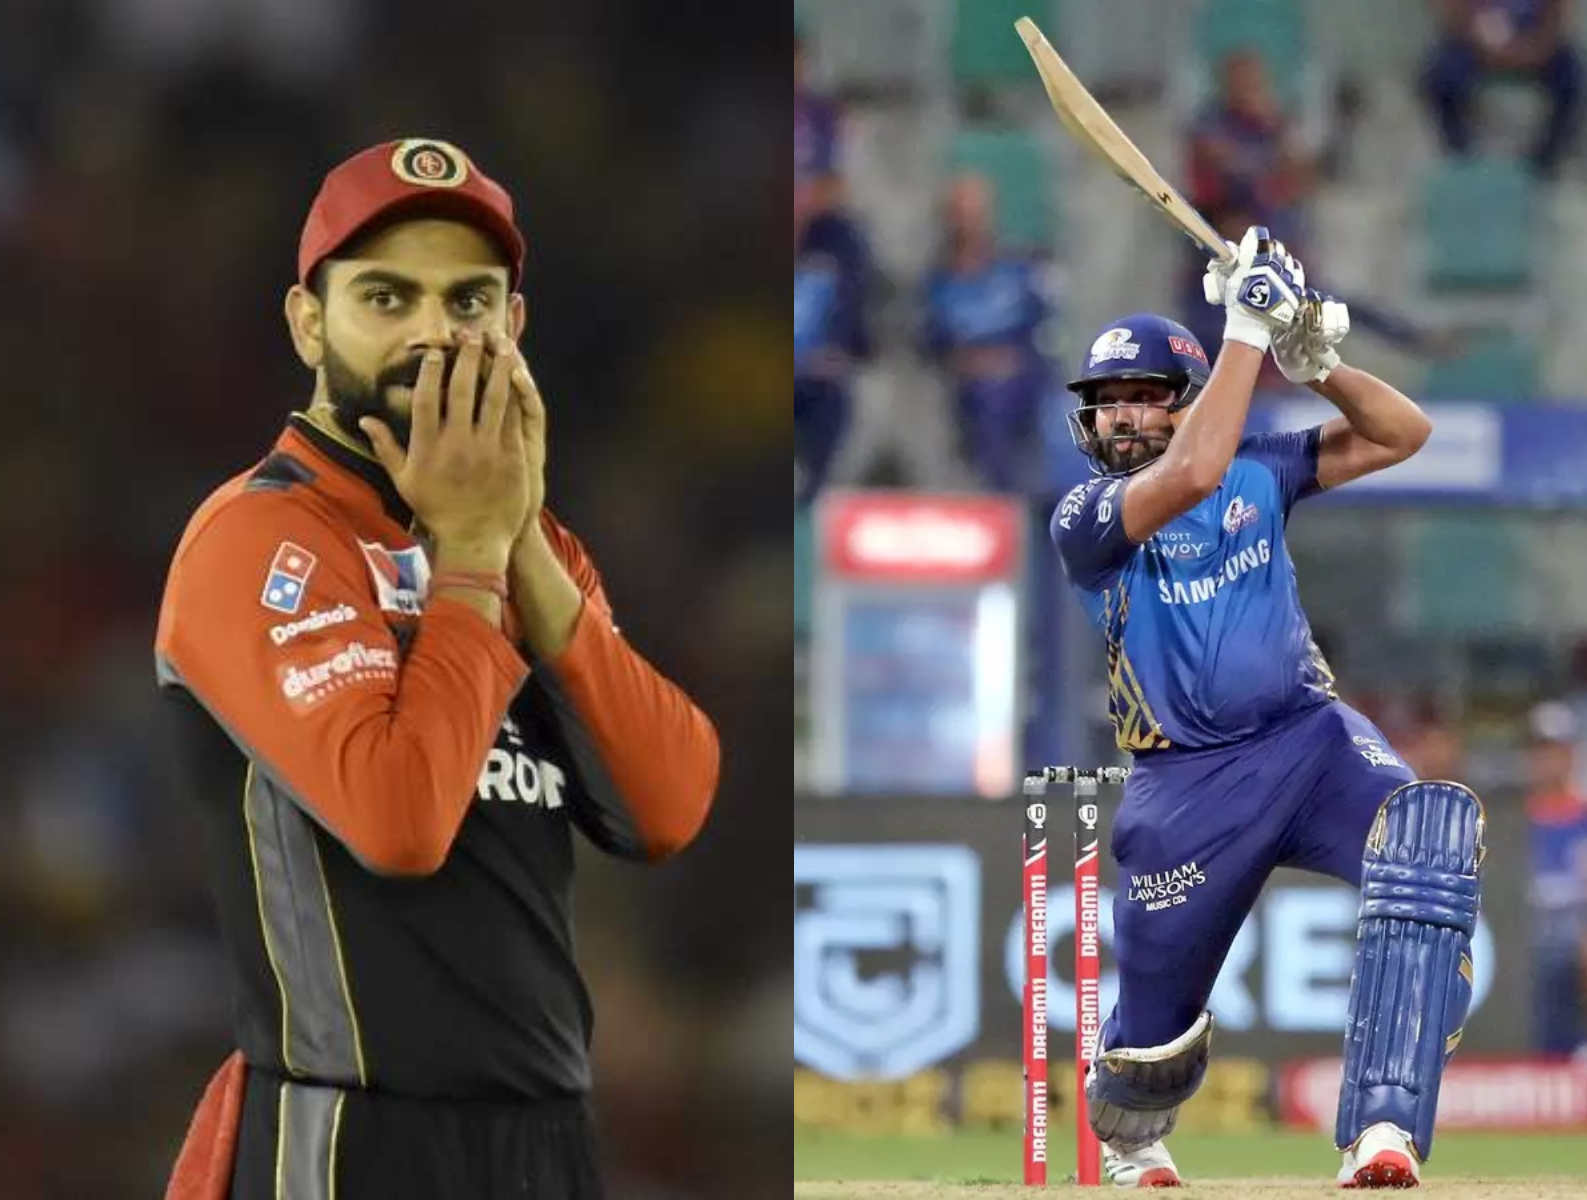 RCB take on MI in a mouth-watering encounter in Dubai on Sept 28